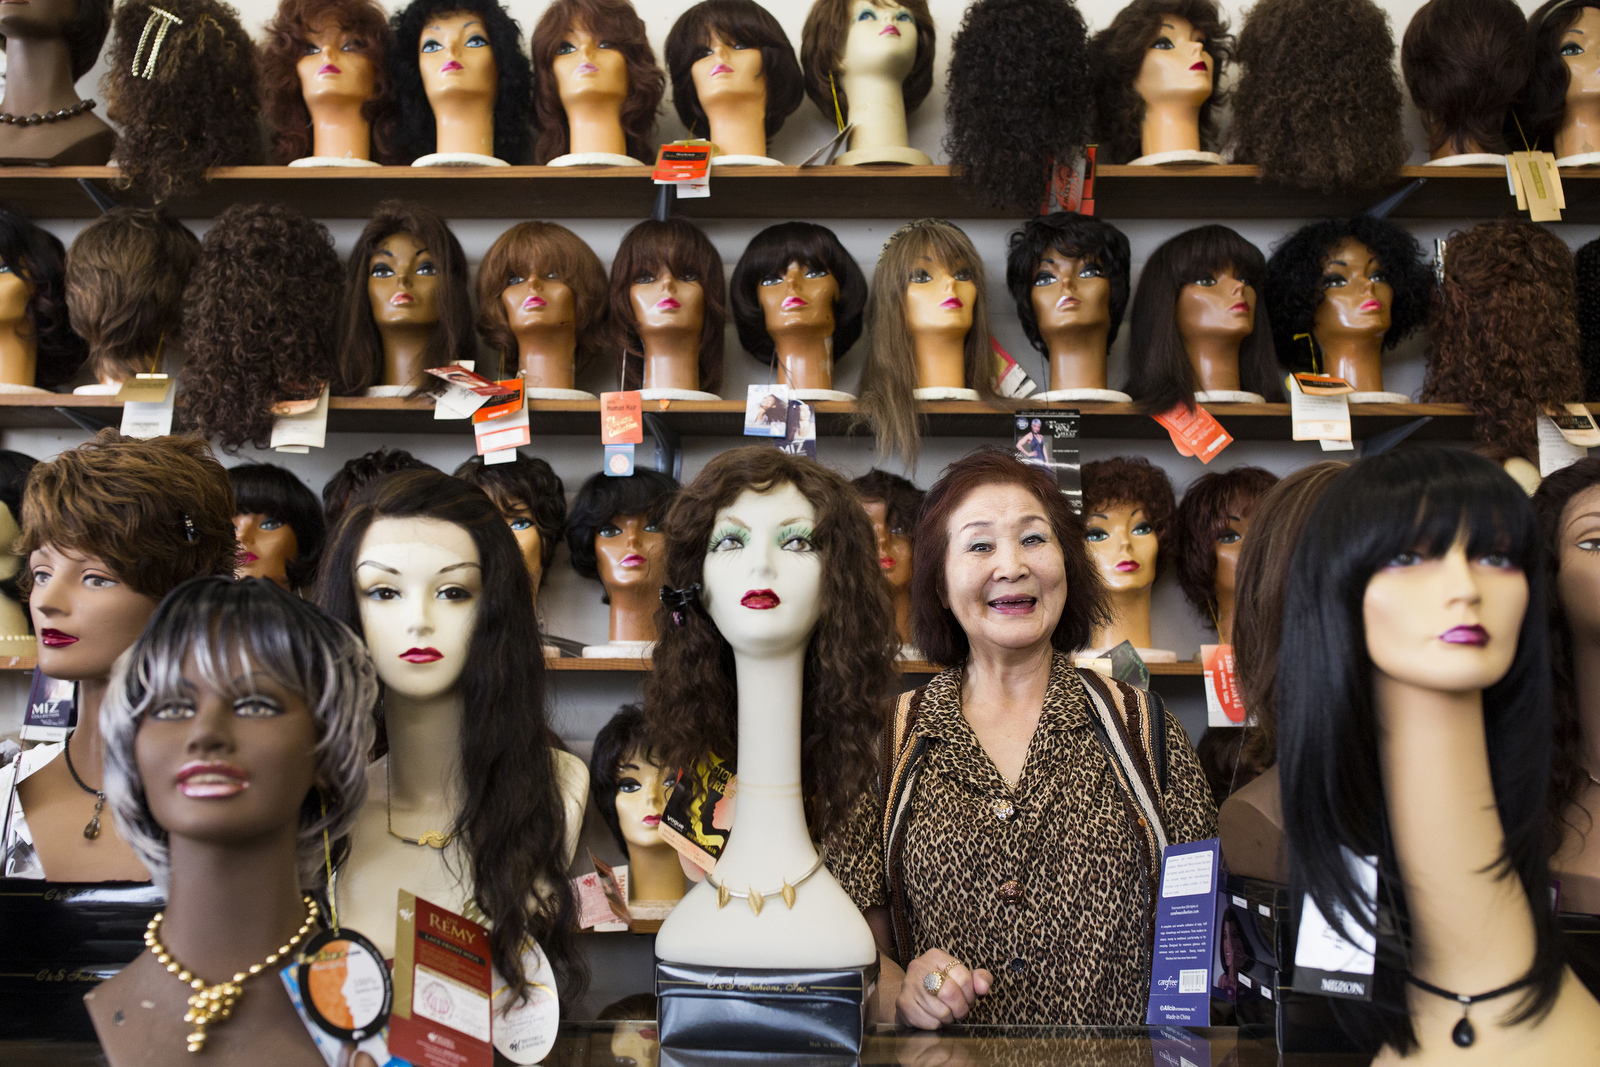 Soyoung Cobb, who has owned Downtown Wig Mart in Wilson for 45 years, says that wig sales are down 65 percent over the past four years.